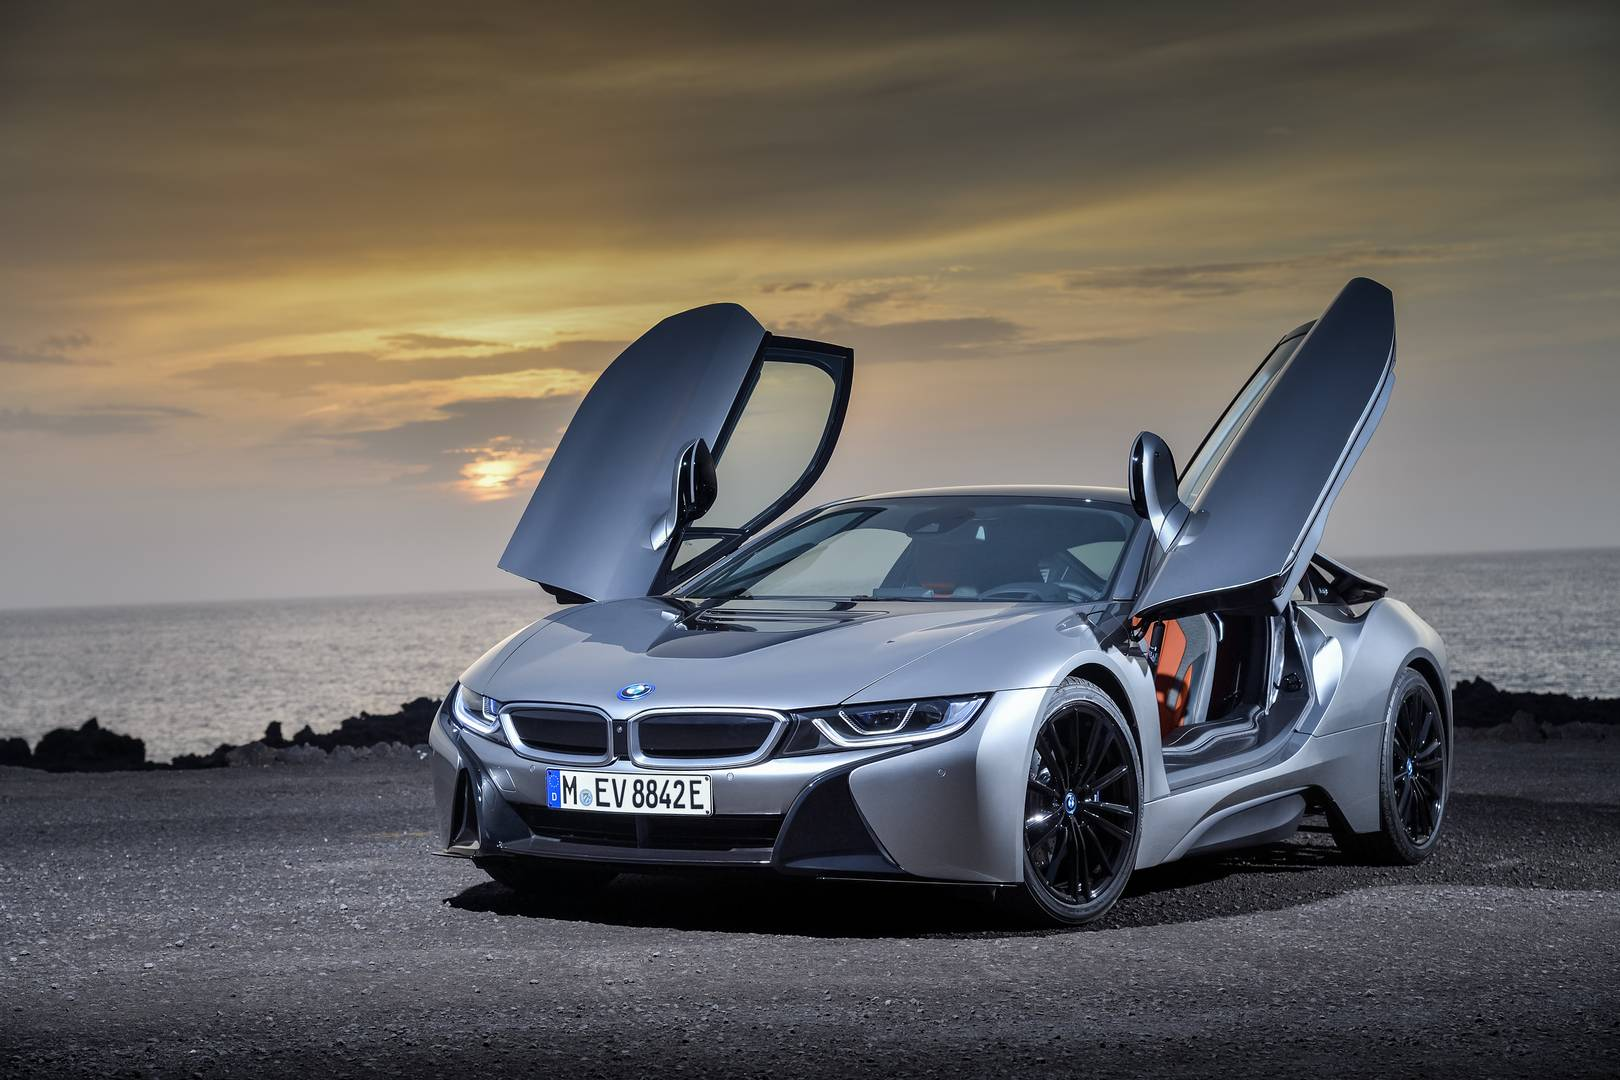 Hybrid BMW M Supercar Coming in 2023 with 700hp+